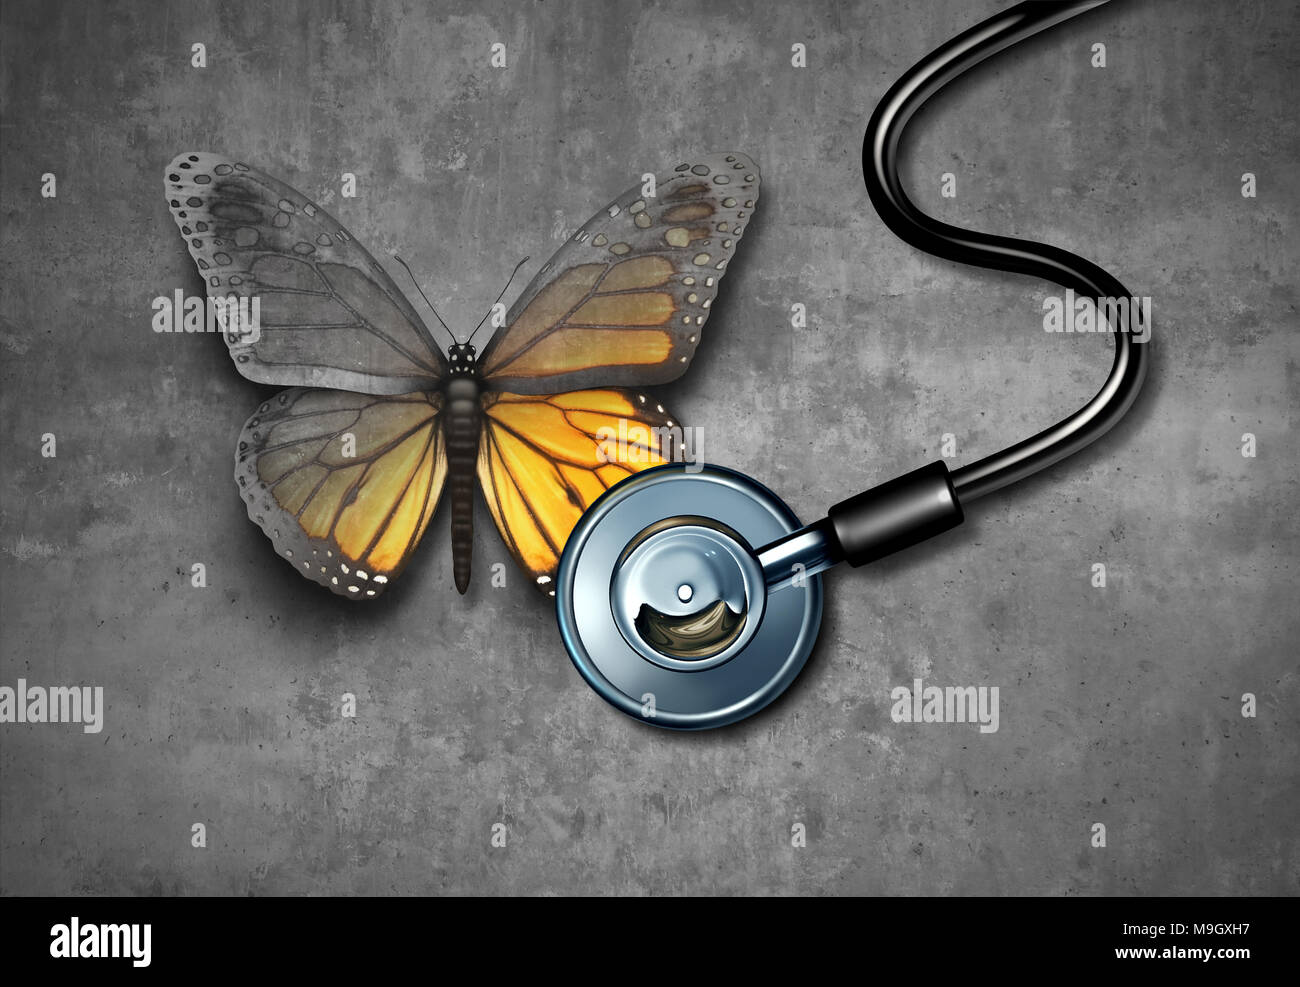 Medical recovery and healing through doctor rehabilitation concept as a grey butterfly being revived through treatment by a stethoscope. - Stock Image